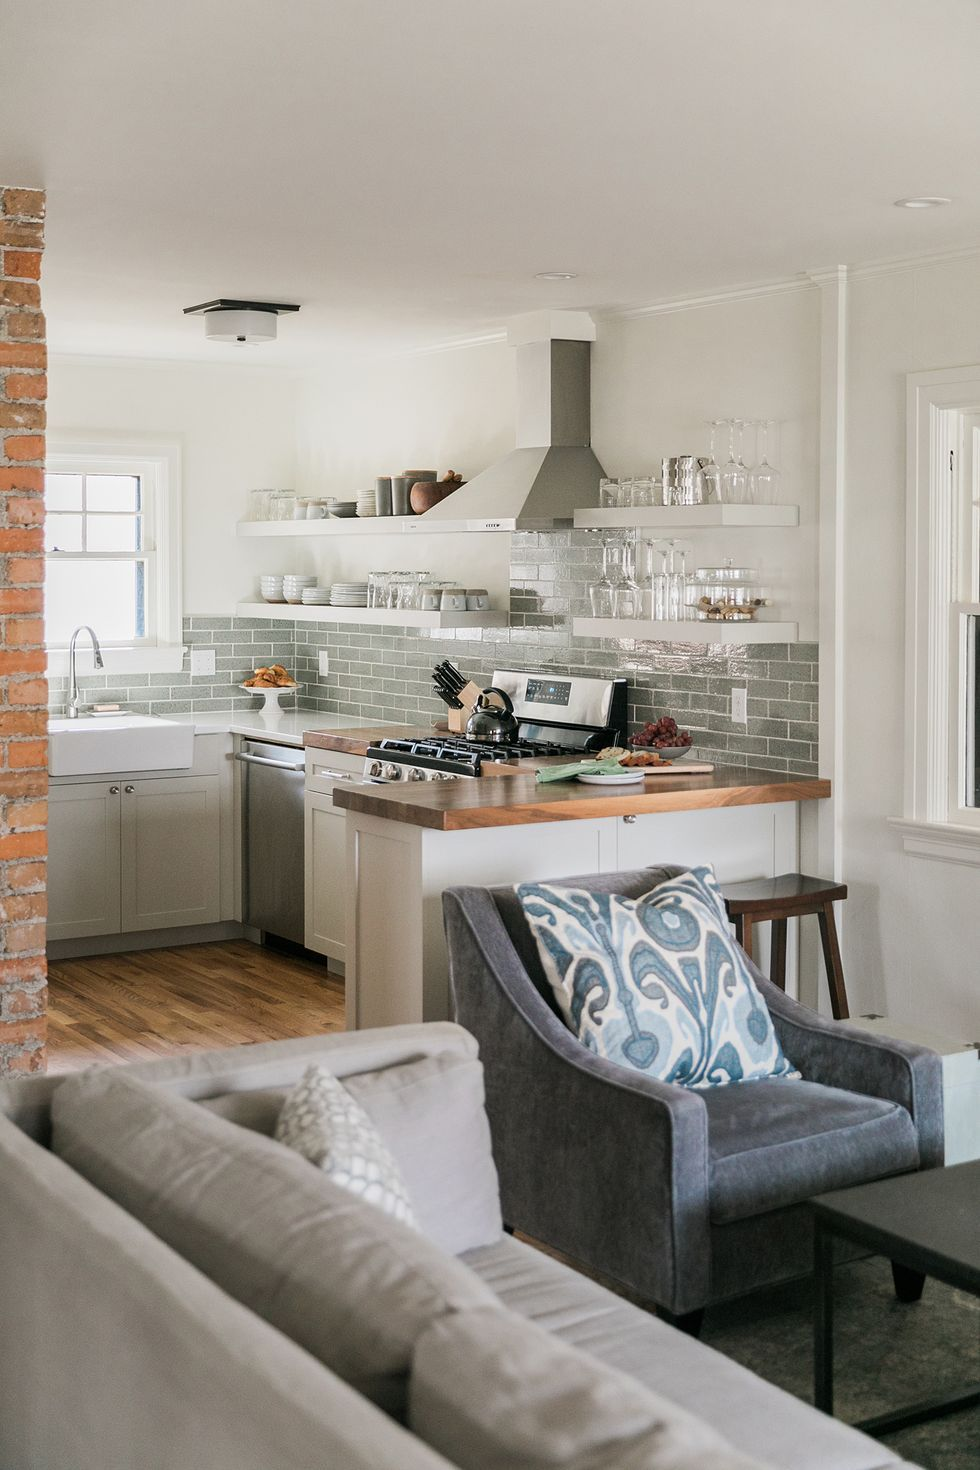 small kitchen with white shaker cabinets and glossy gray subway tile backsplash. floating shelves house dishware and a wooden butcher block countertop is adjacent to a farmhouse sink